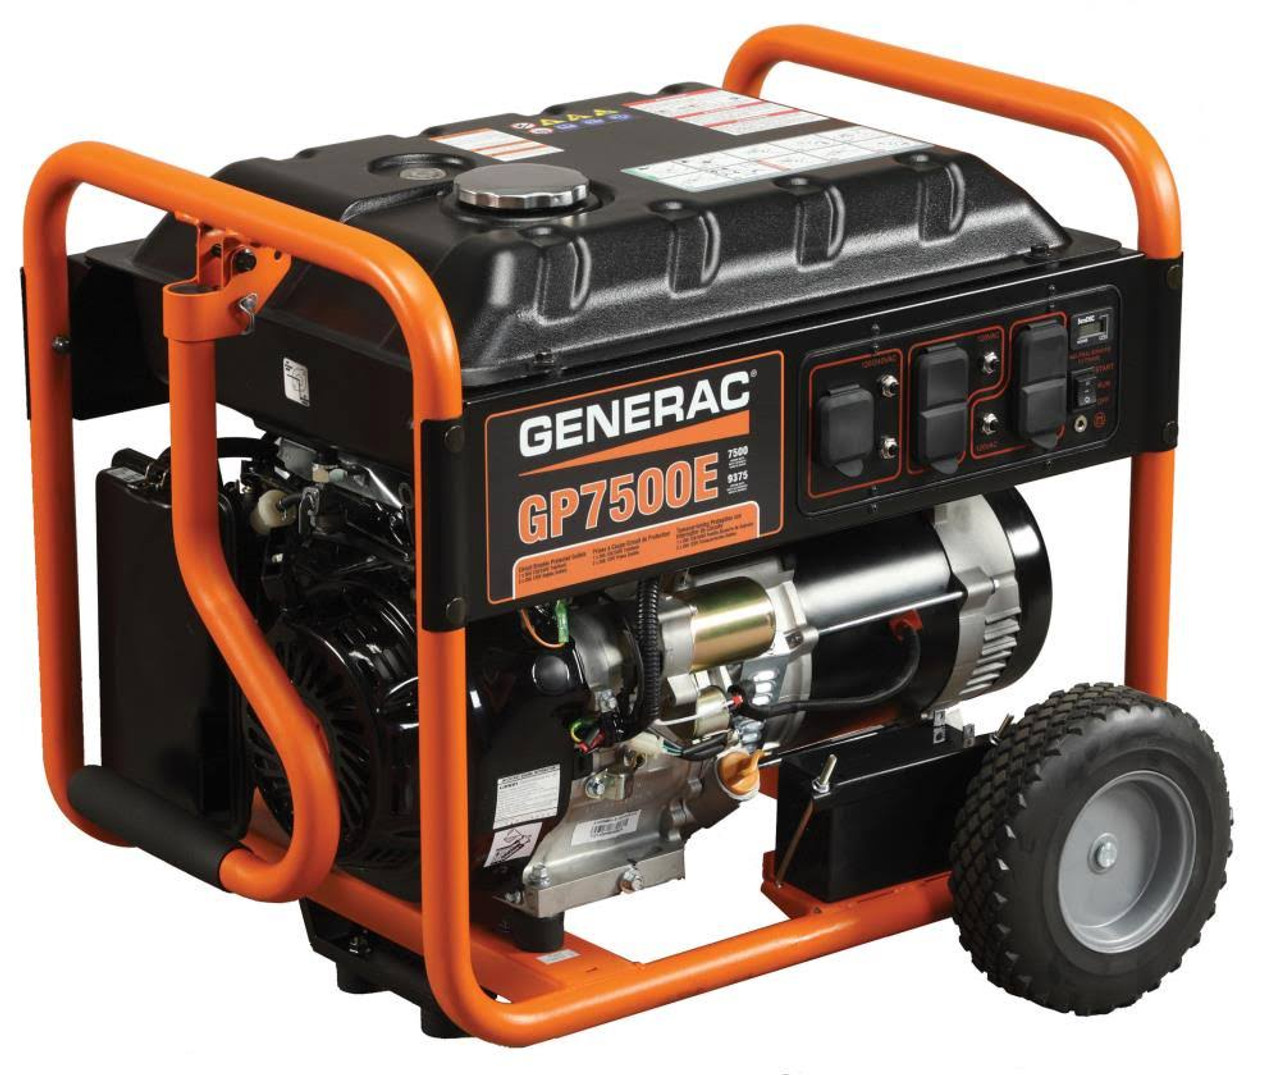 small resolution of generac 5943 7500 running watts gas powered portable generator carb compliant